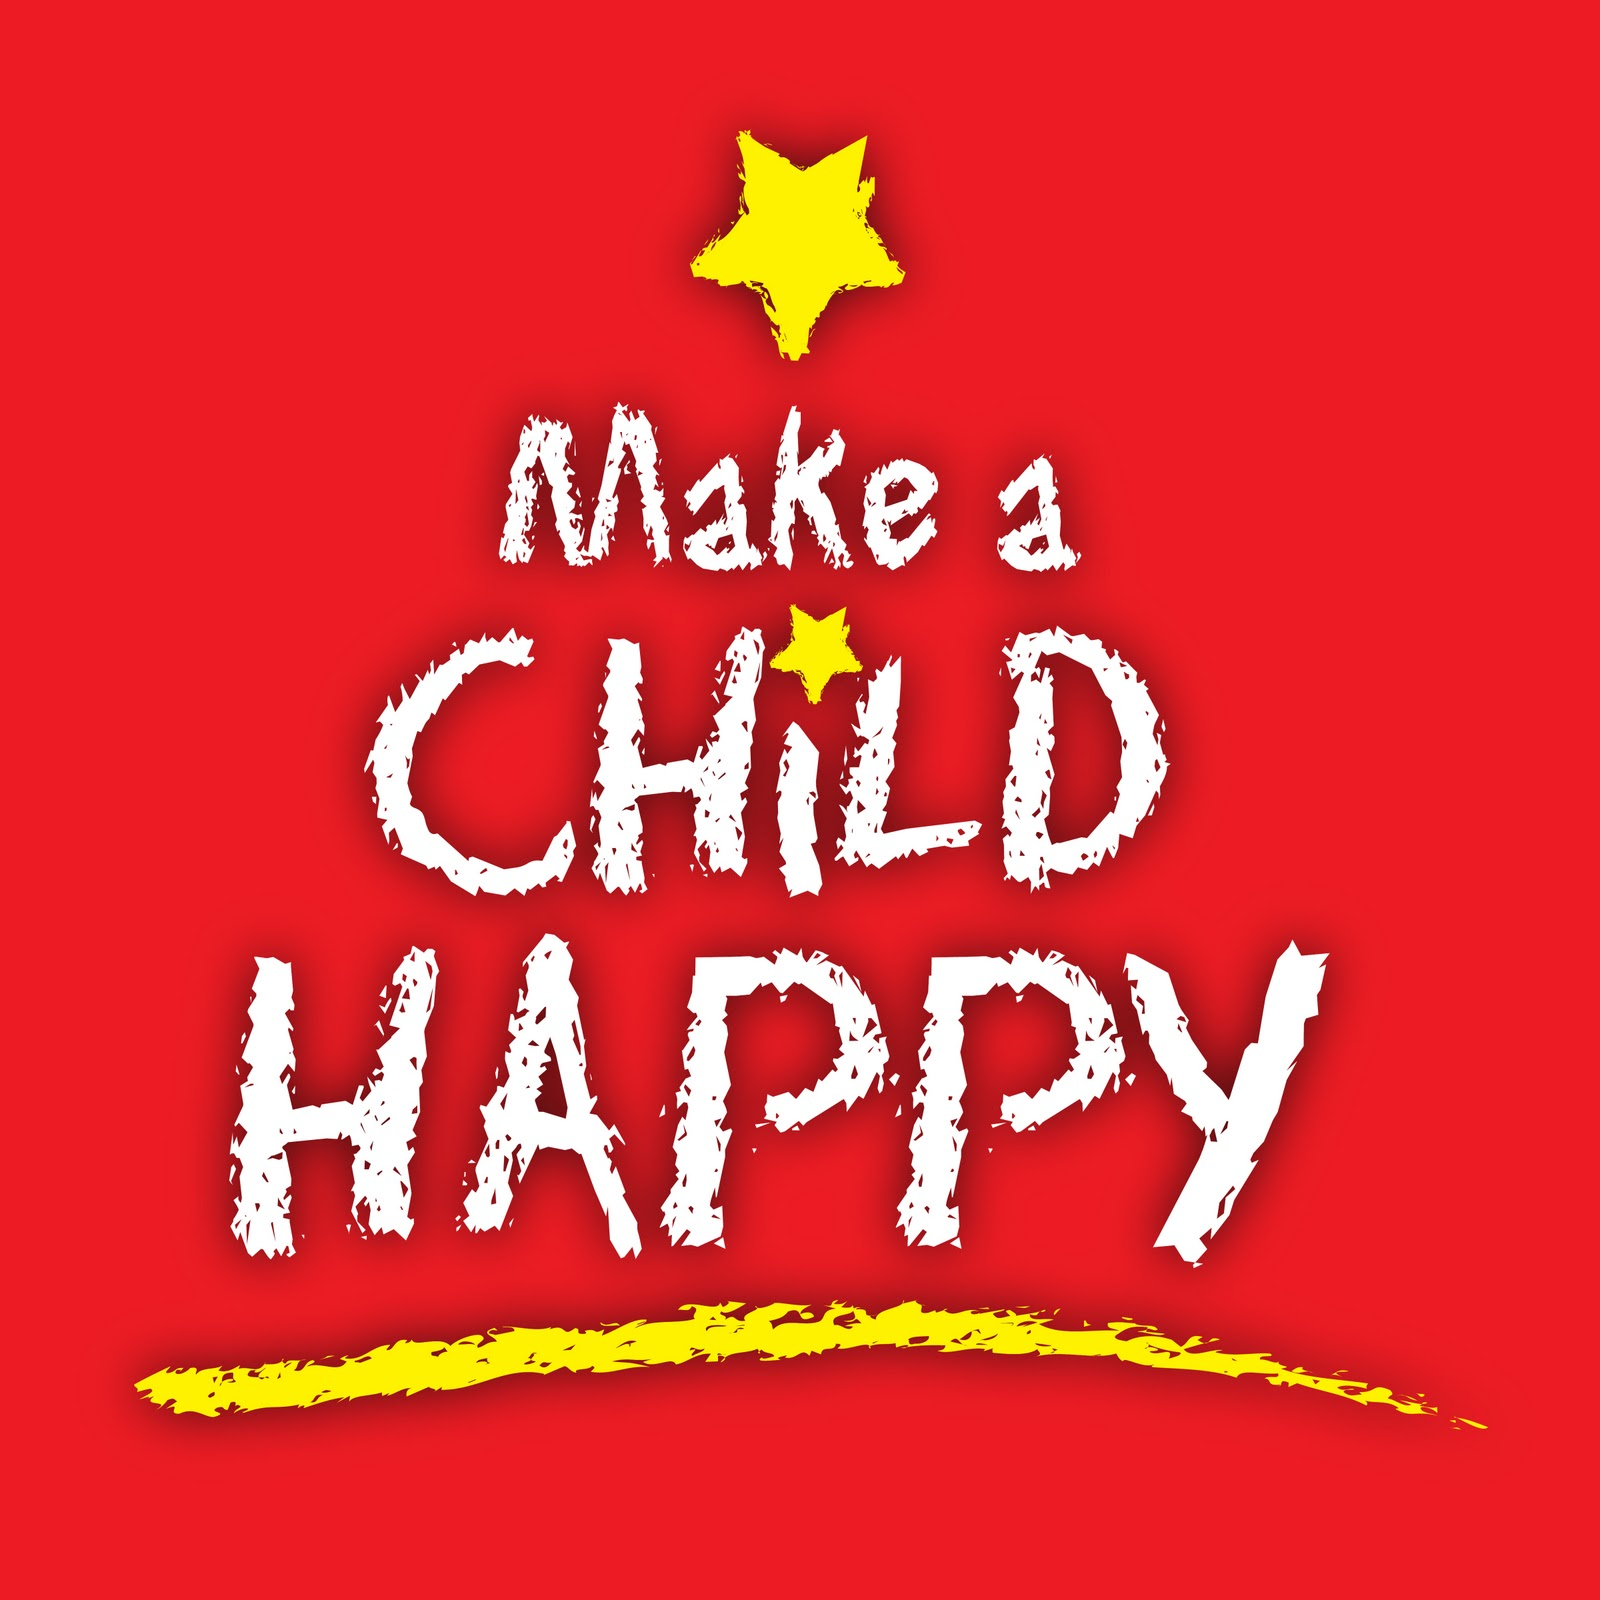 How to make a child happy